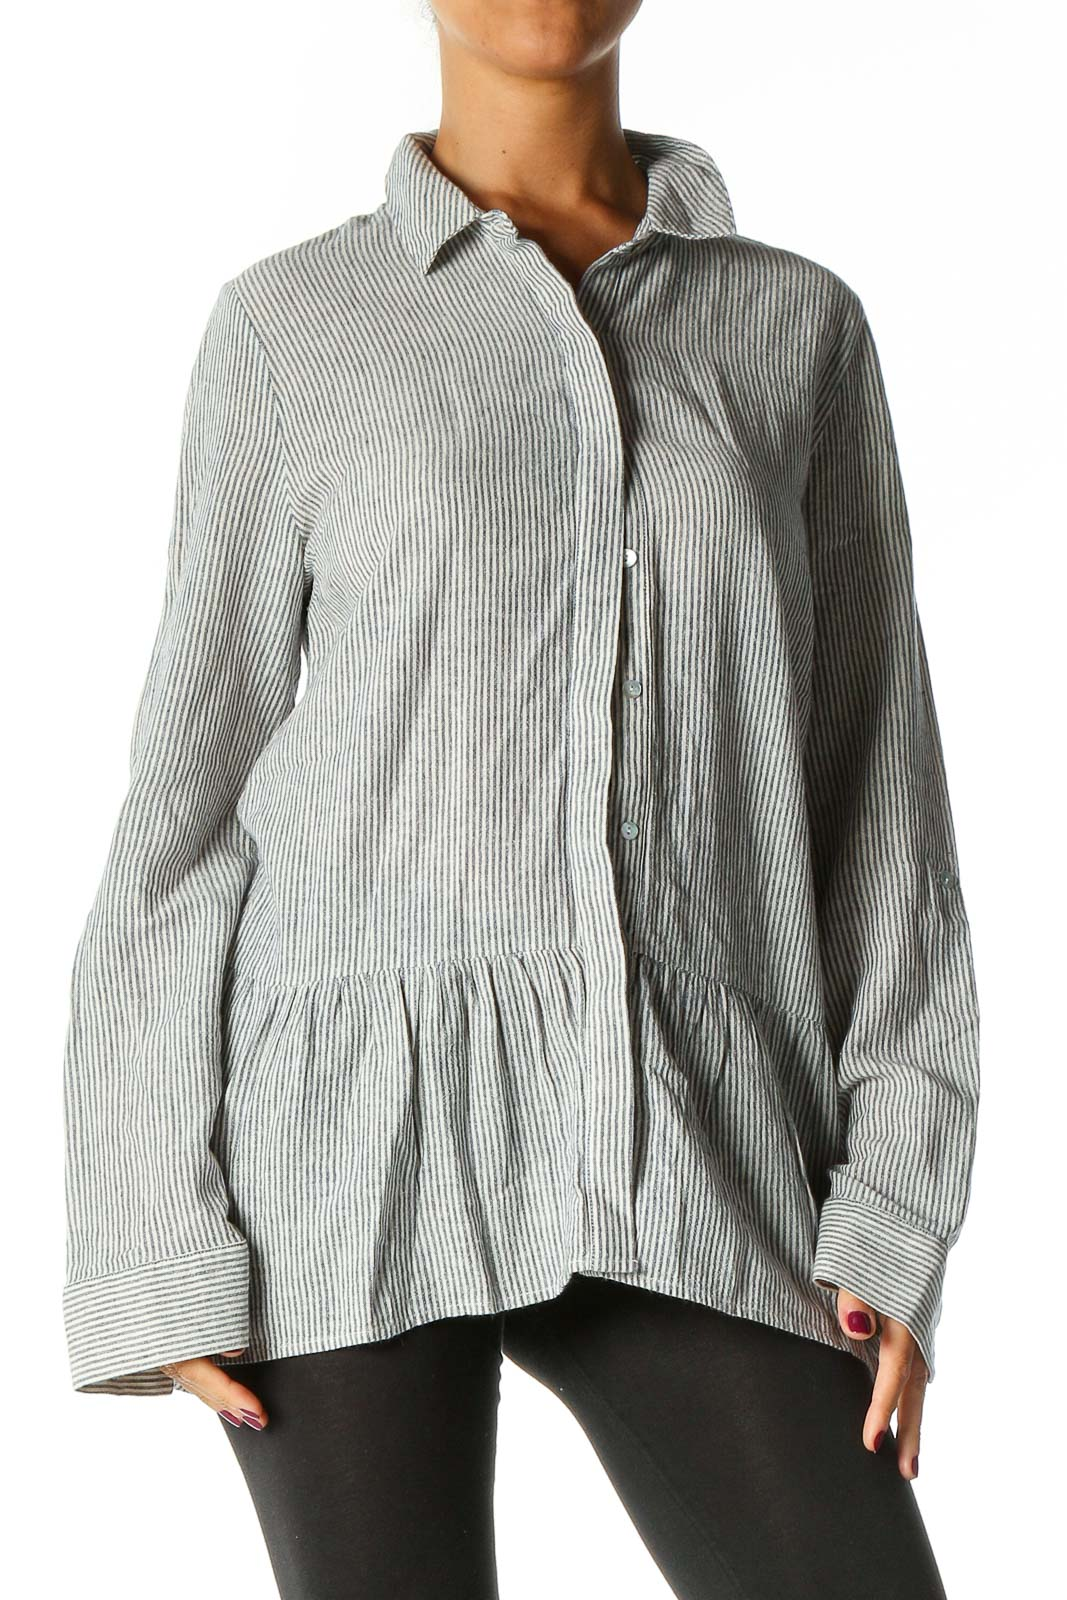 Gray Striped Bohemian Shirt Front